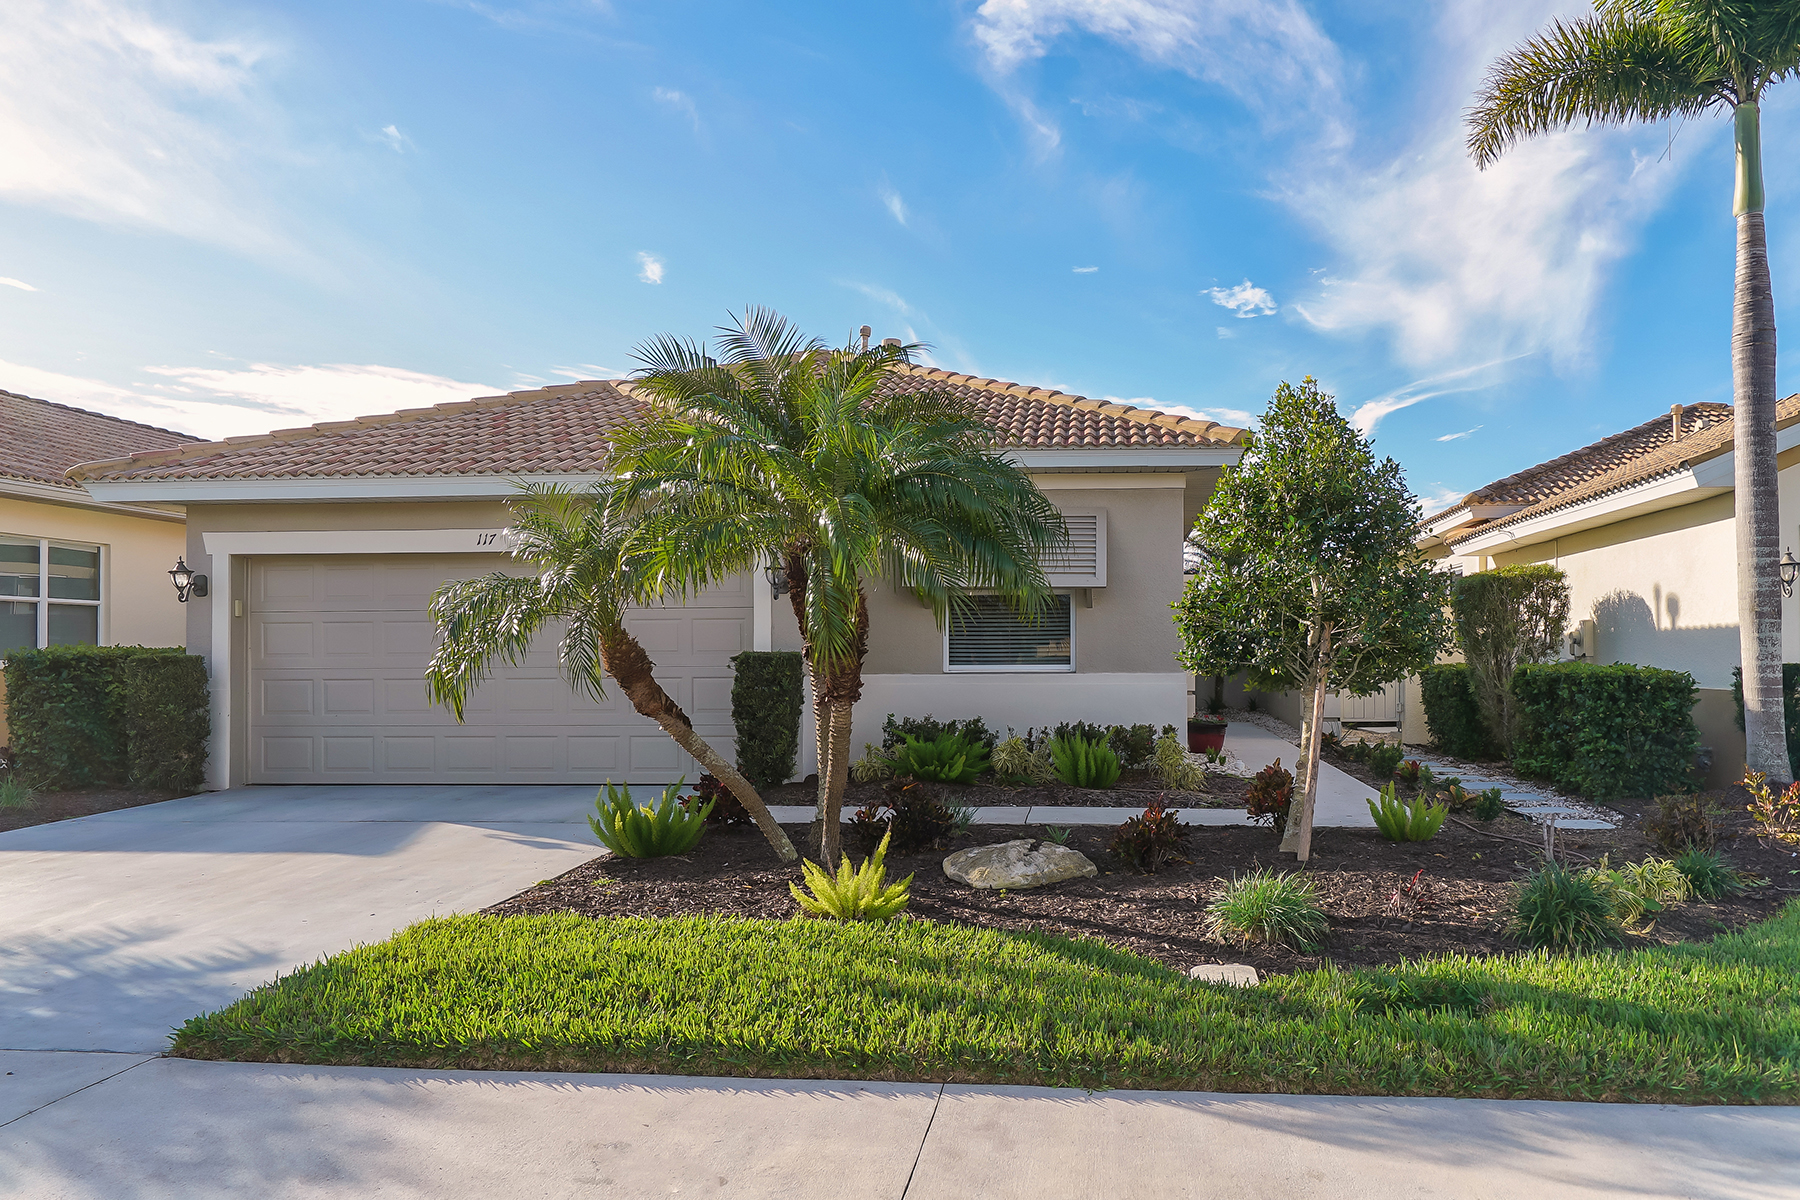 Single Family Home for Sale at VENETIAN GOLF & RIVER CLUB 117 Mestre Pl, North Venice, Florida, 34275 United States